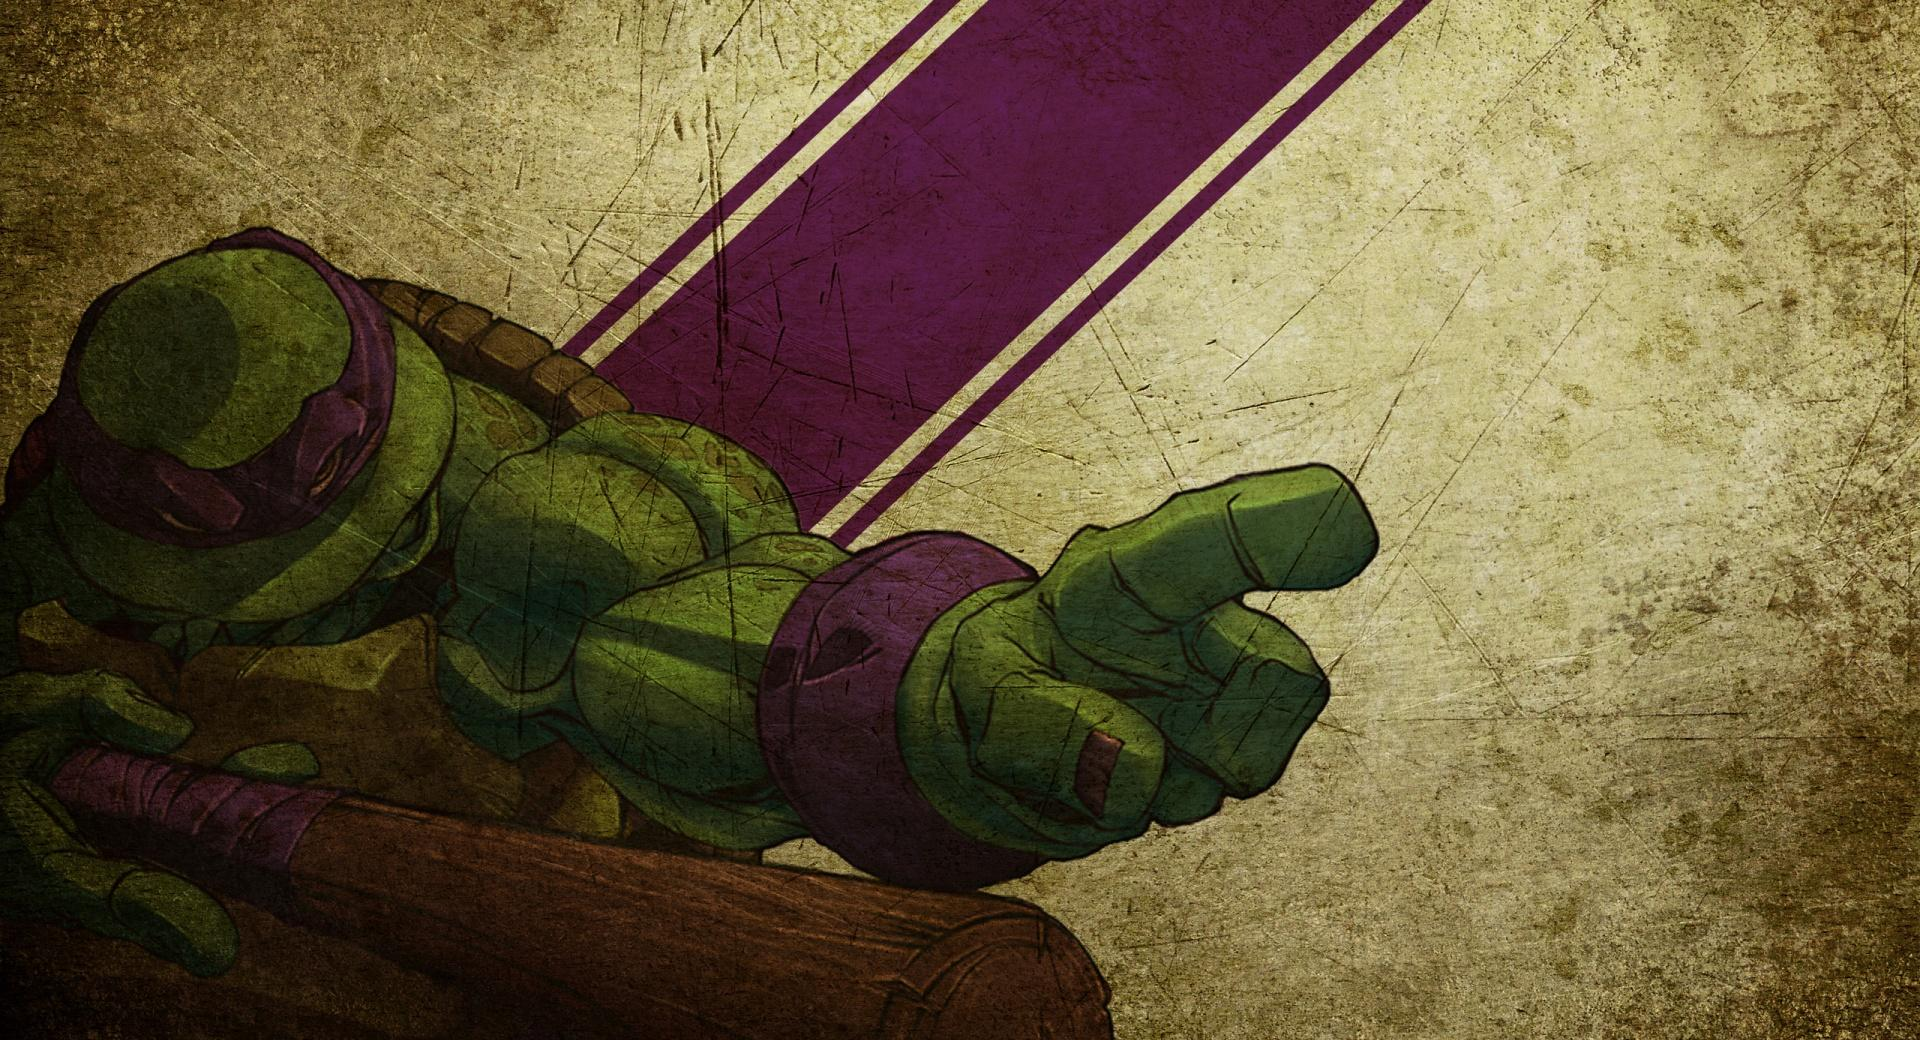 Donatello Teenage Mutant Ninja Turtles wallpapers HD quality